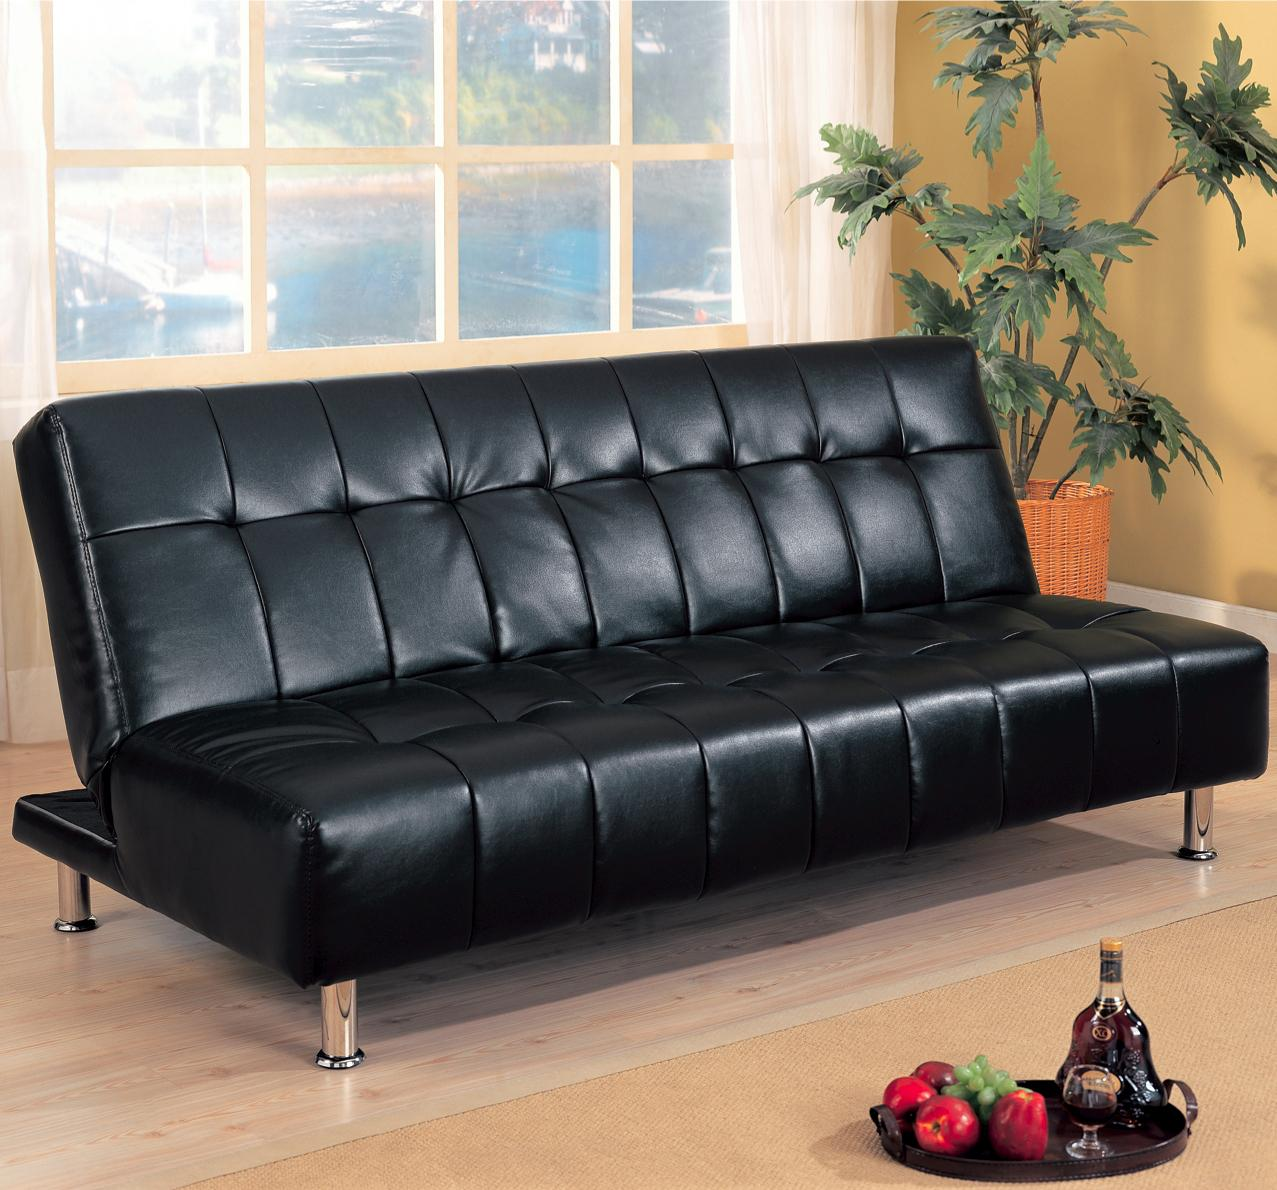 Armless-faux-leather-futon-sofa-bed